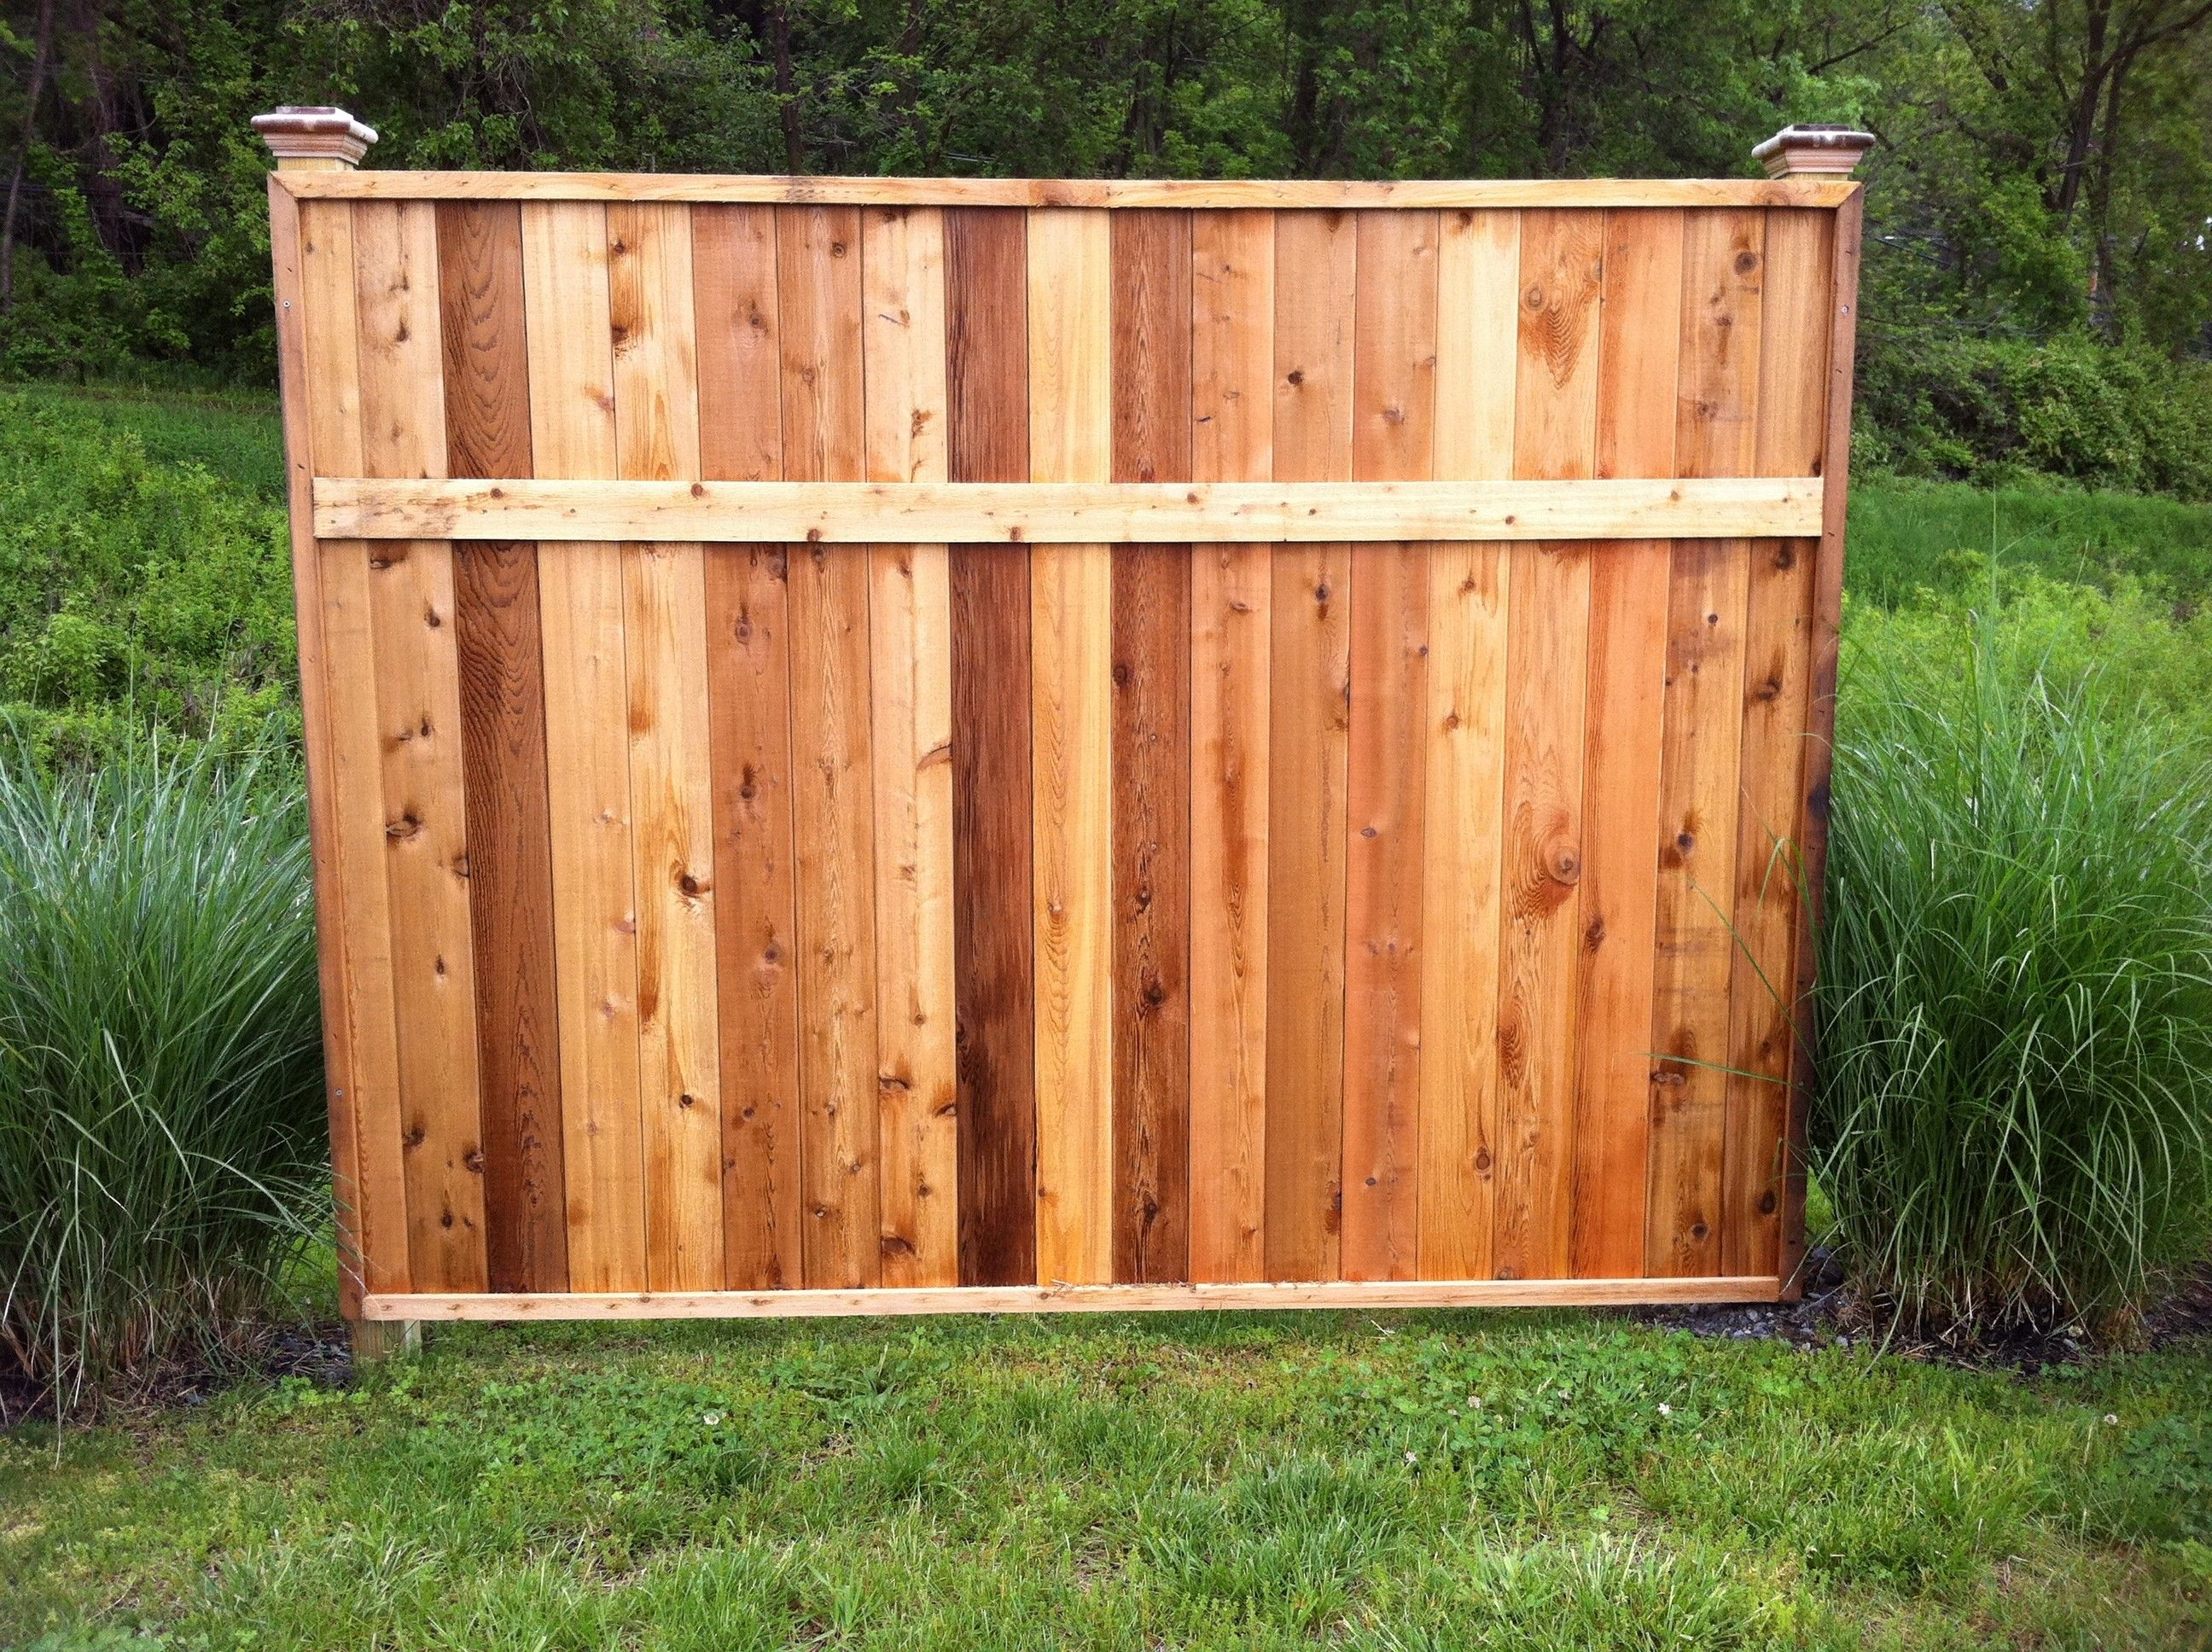 6 High Privacy Panel 1 X 5 Tongue Groove Boards Wood Fences Backyard Fences Aluminum Fencing Wood Fence